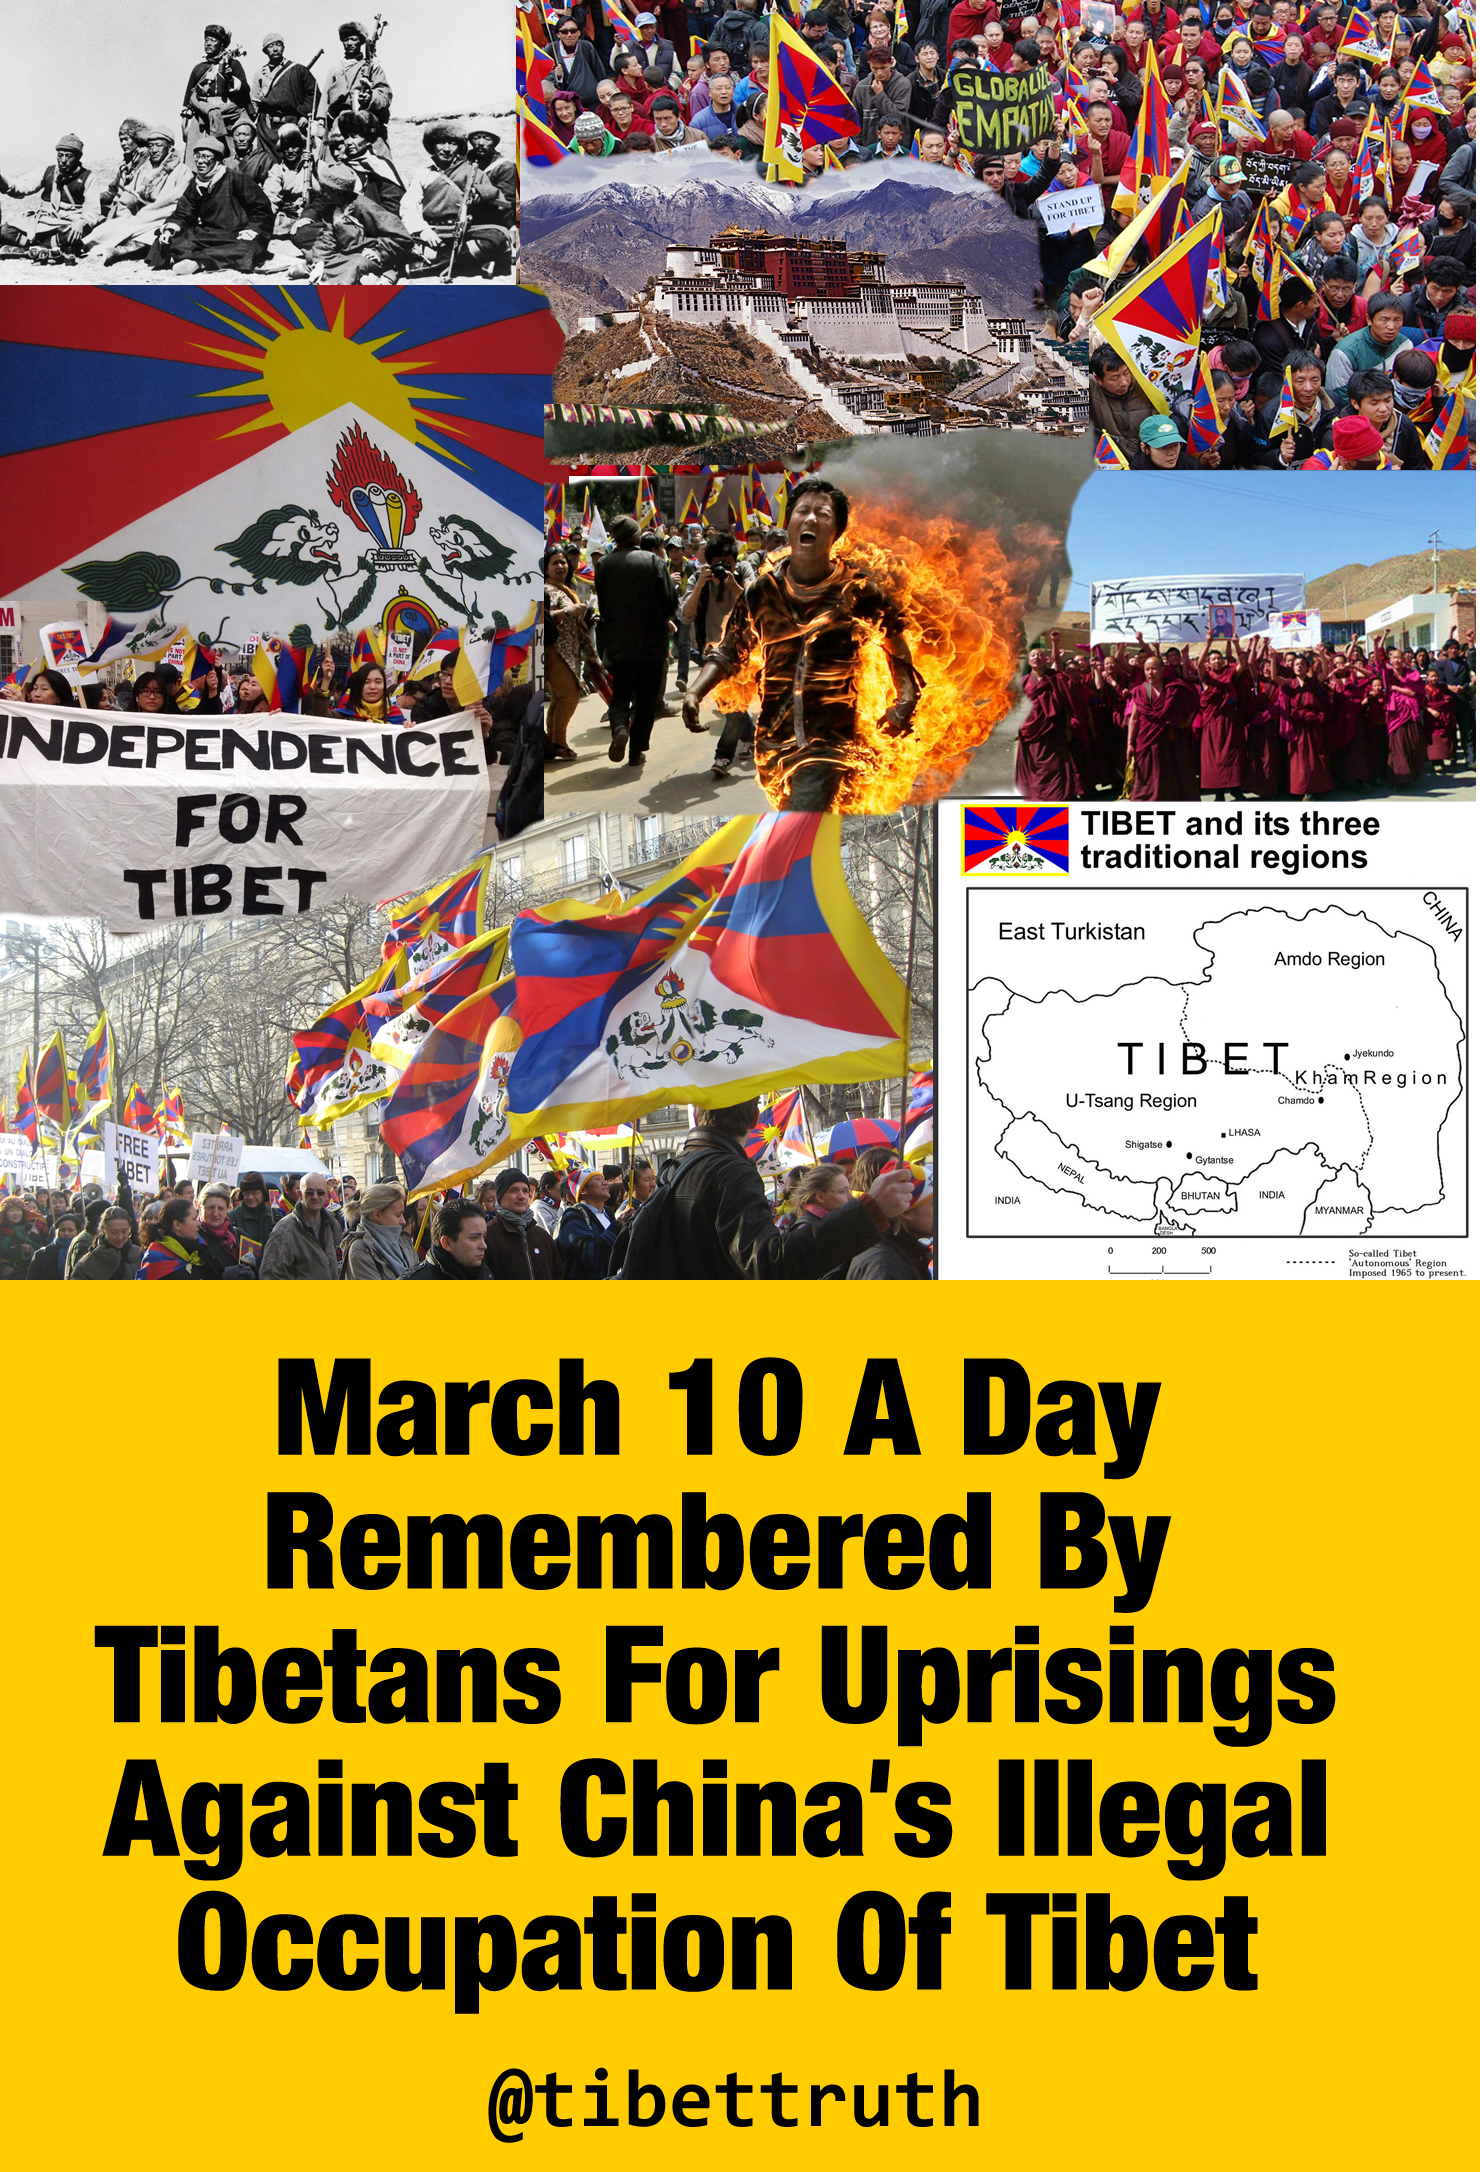 March 10 Action For Tibet At Your Fingertips